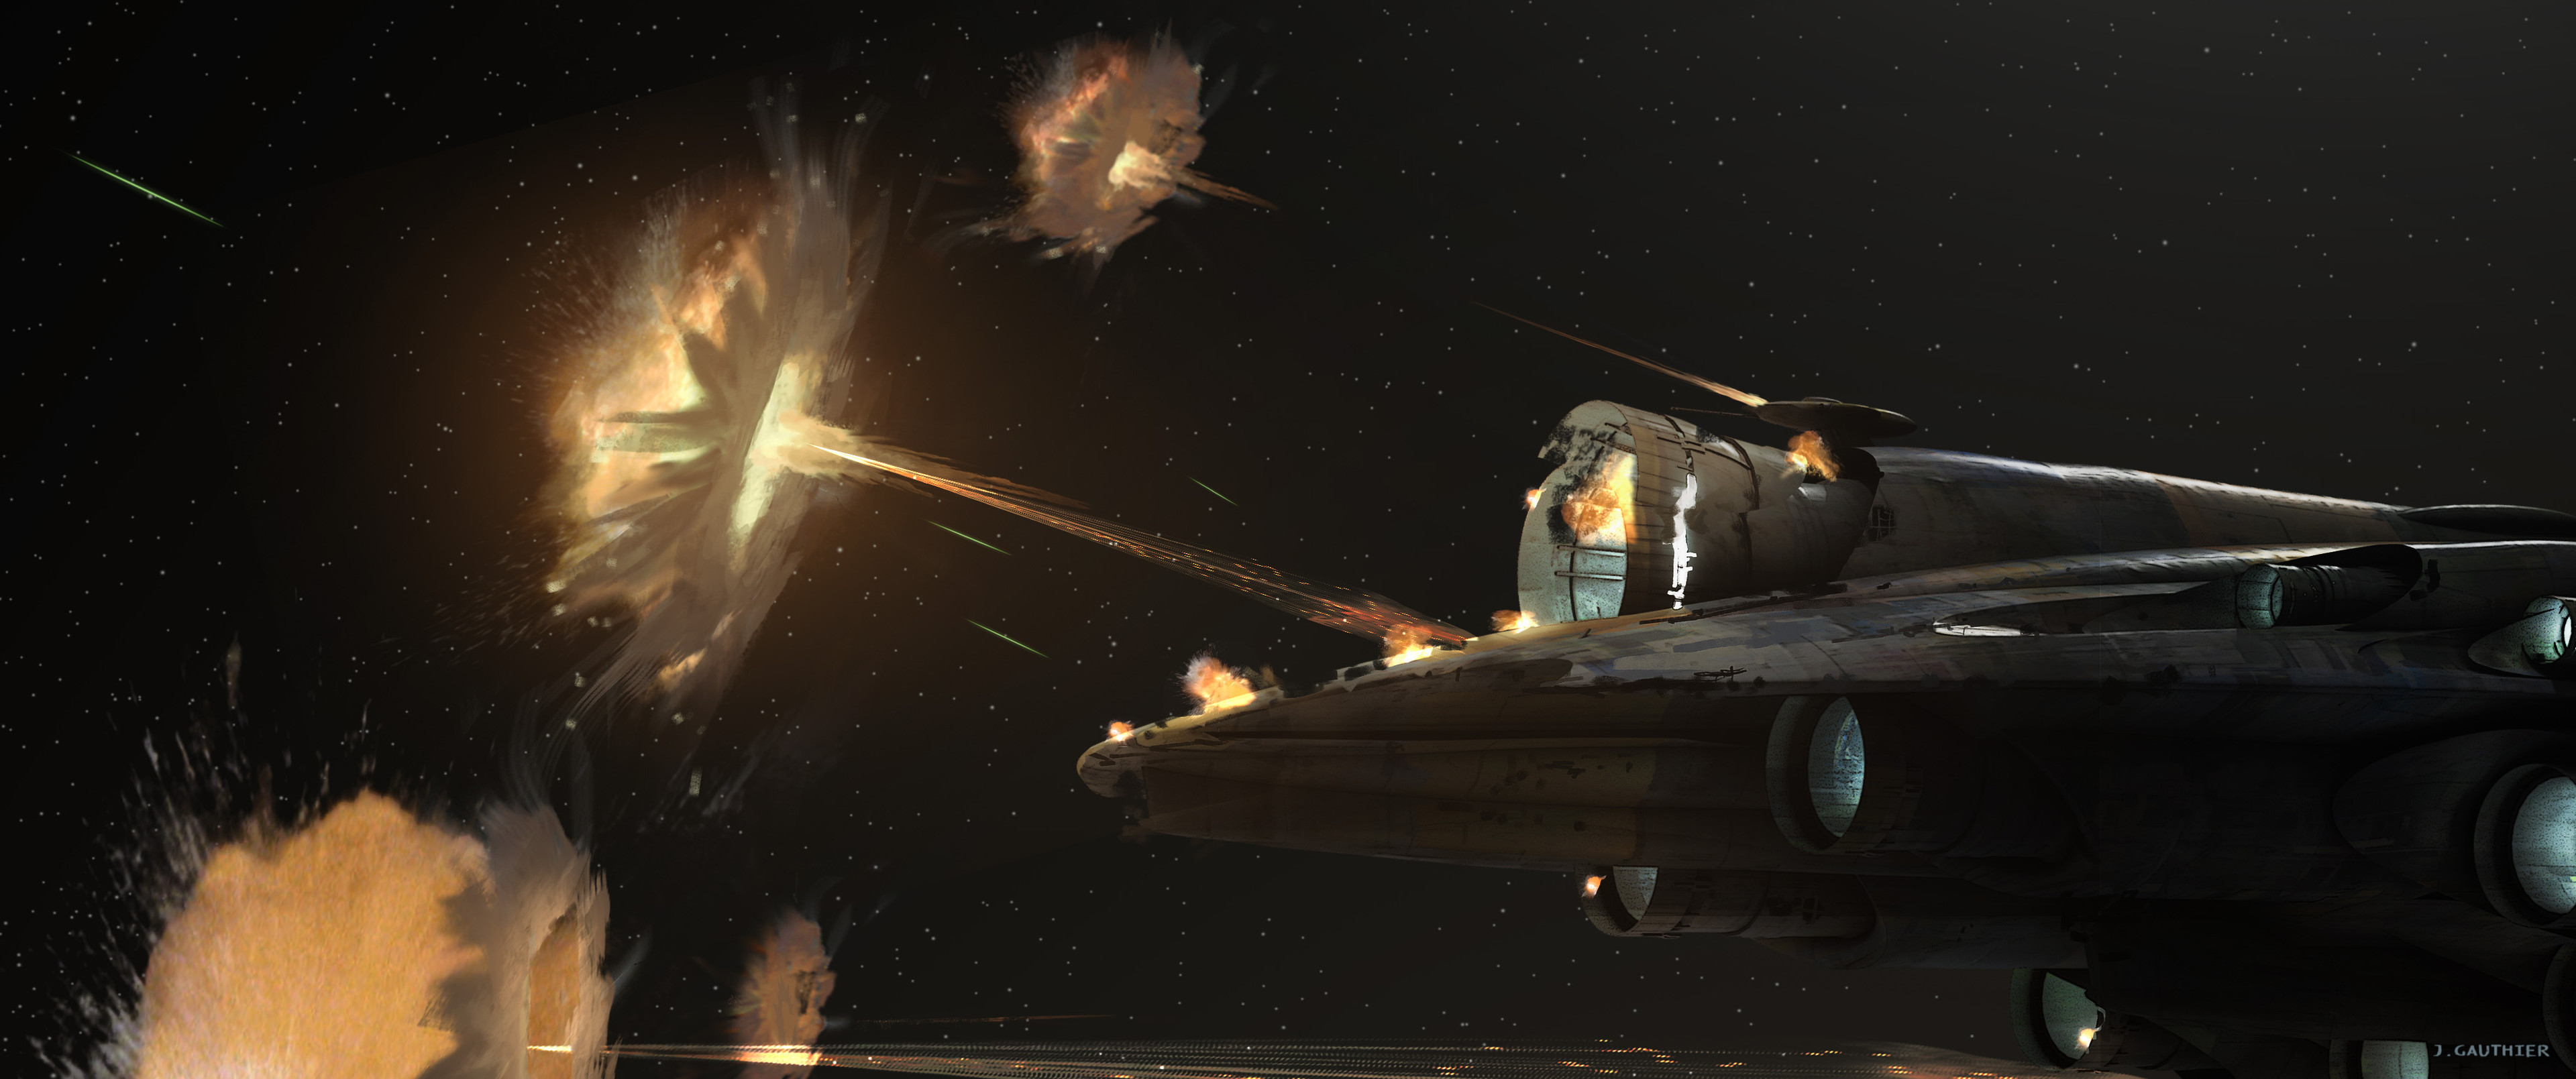 One of the many exploration sketches we did to figure out how the force shield would look during the attack